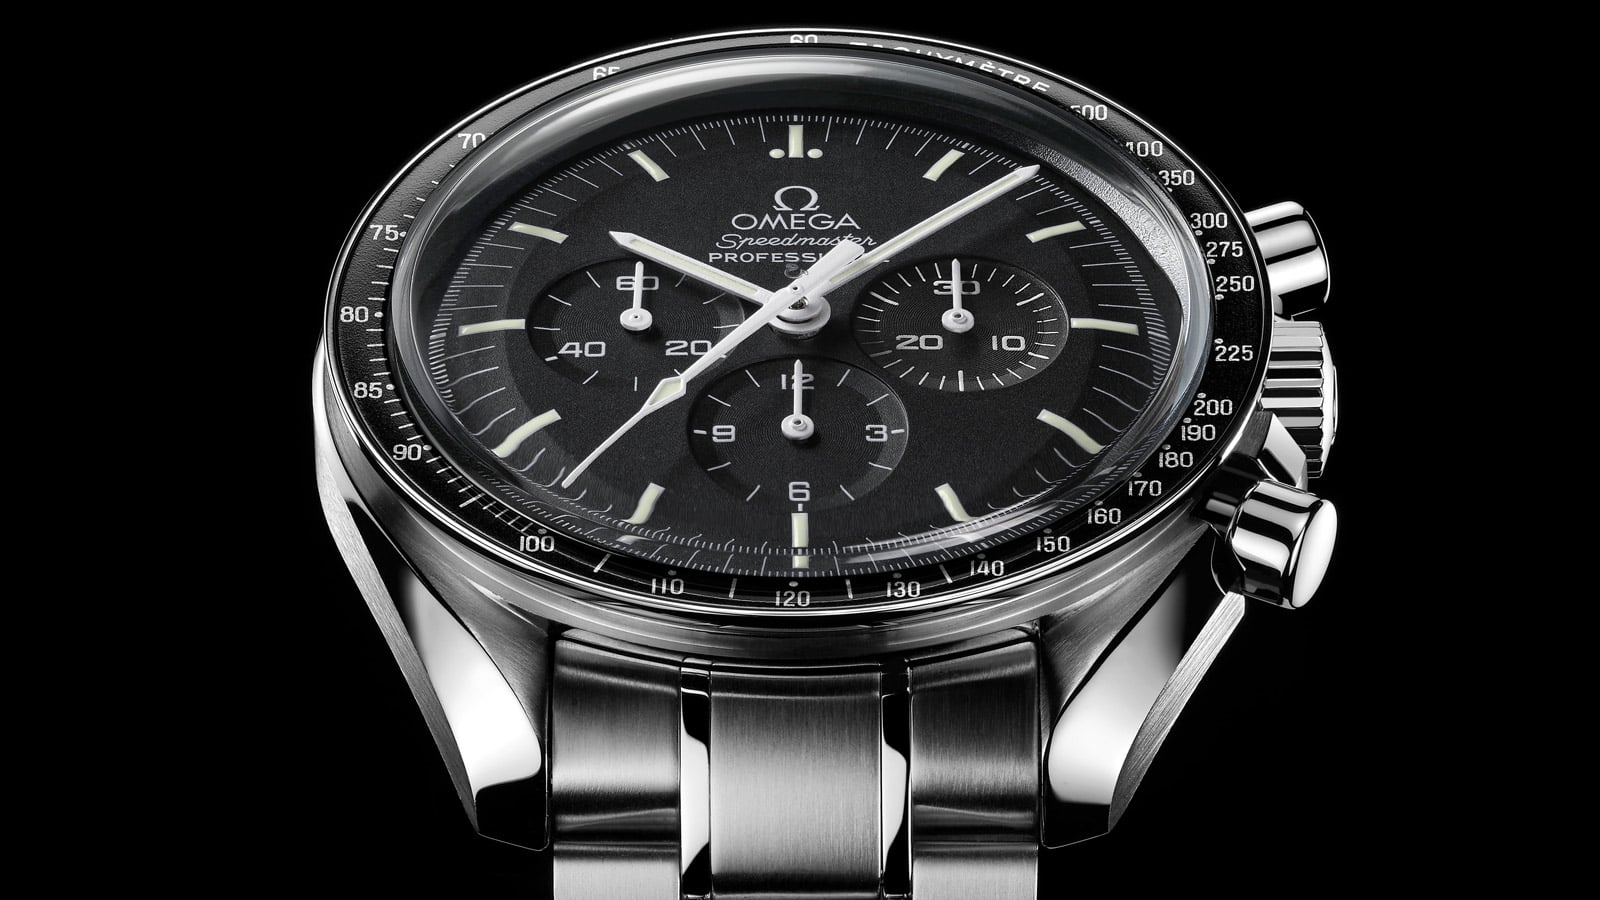 Close-up view of an Omega Speedmaster Professional Chronograph known as Moonwatch